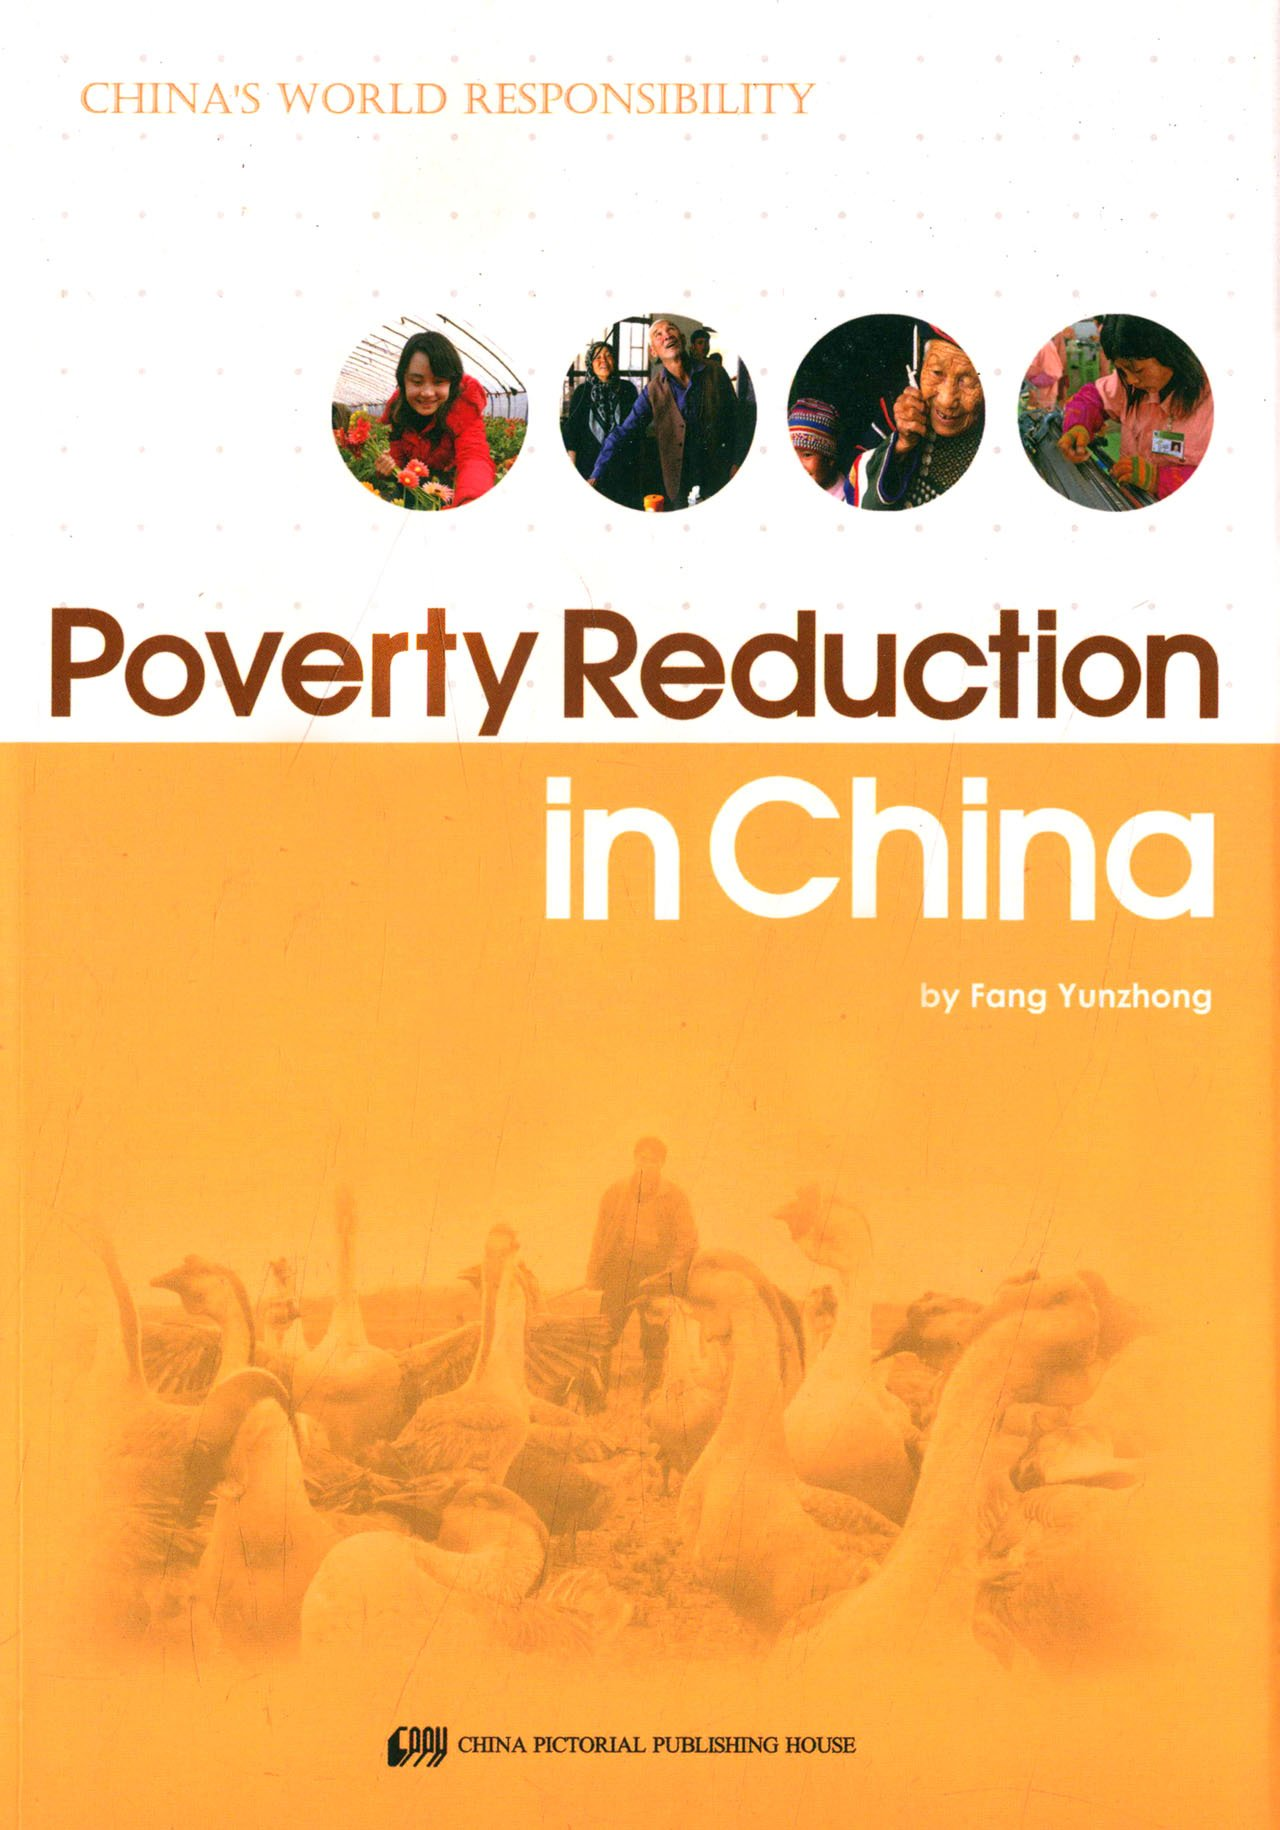 Poverty Reduction in China - China's World Responsibility